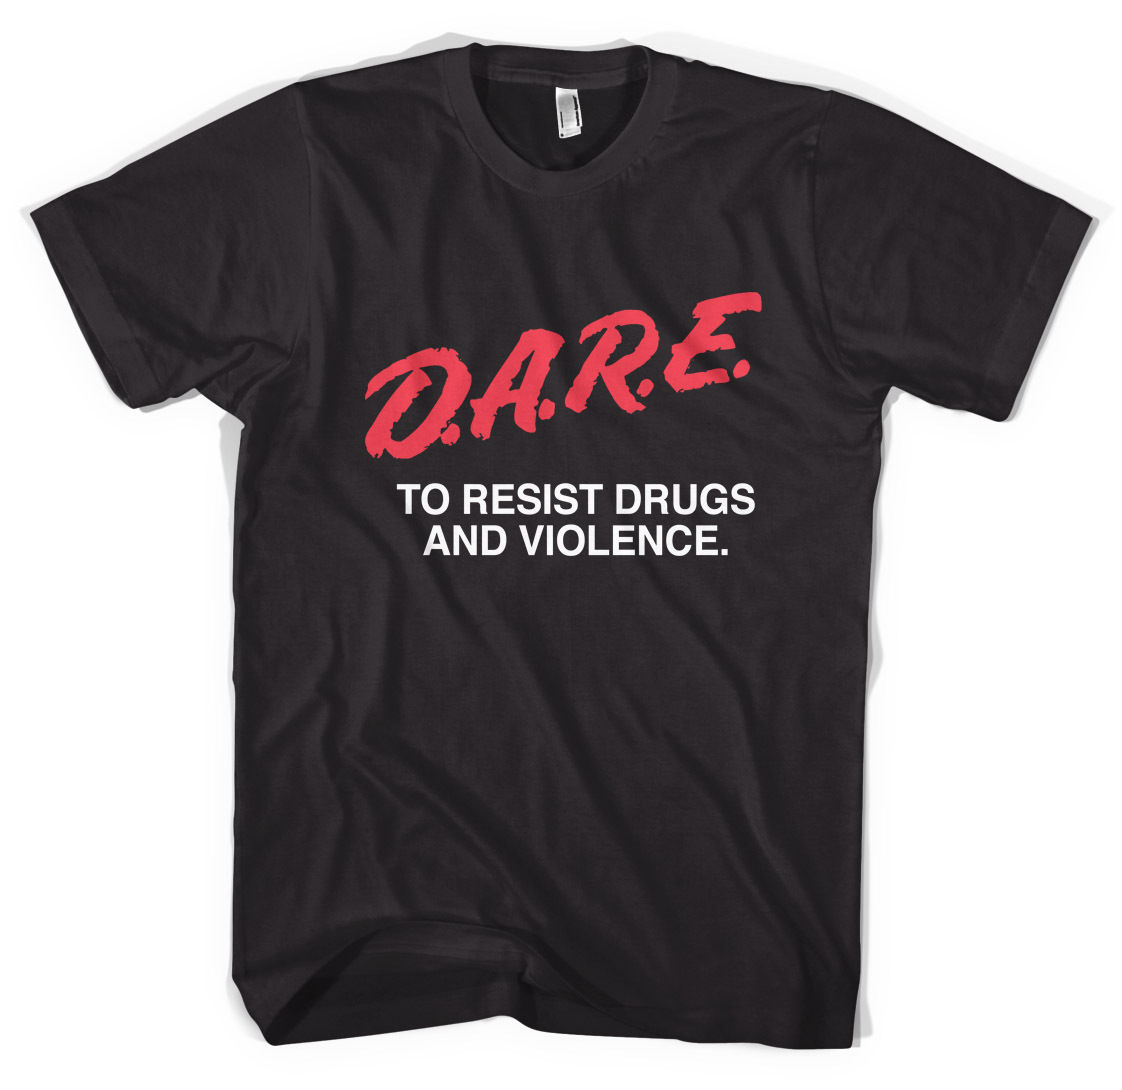 D A. r.e anti-drugs Unisex Camiseta Todas Las Tallas Negro ...